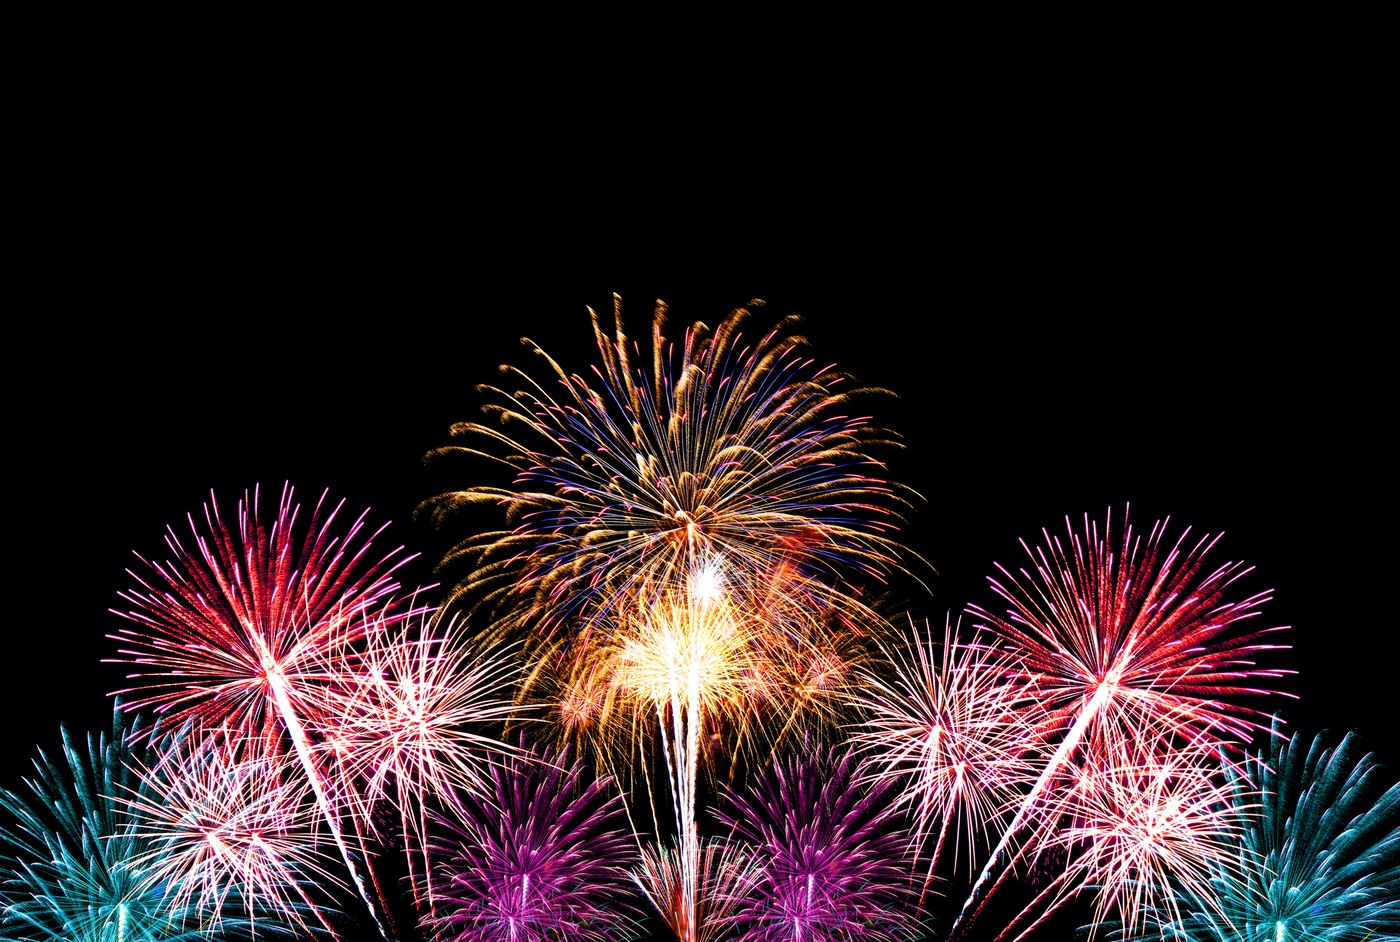 https://tickertapecdn.tdameritrade.com/assets/images/pages/md/Fireworks: stock market roundup for 2021